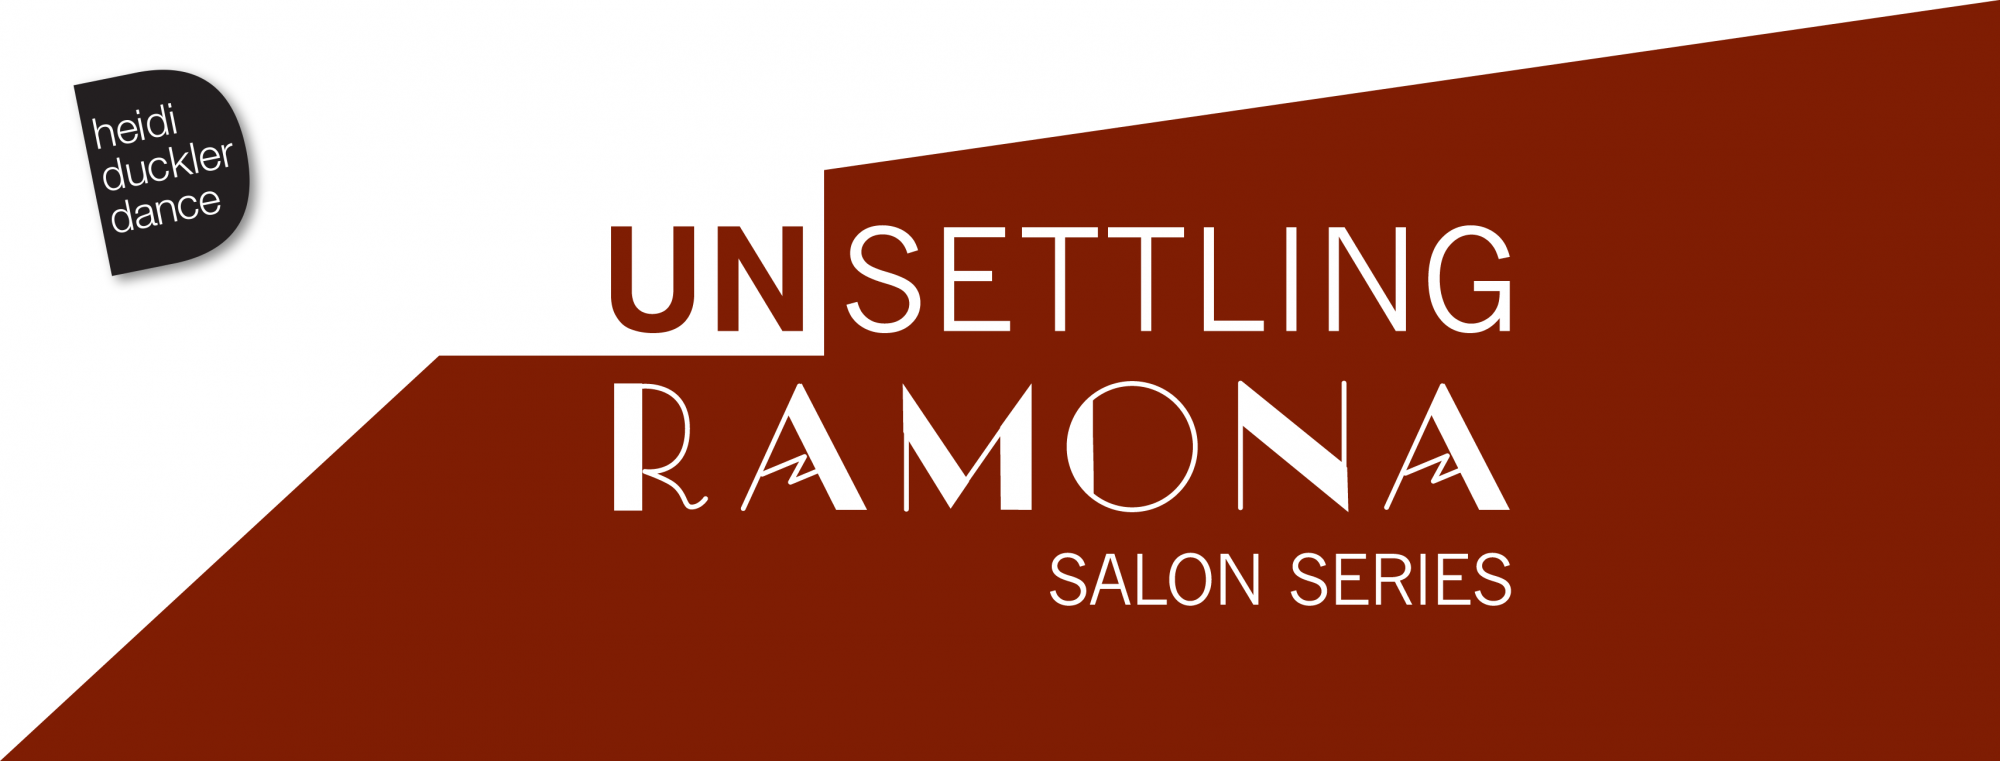 news: presenting the Unsettling Ramona Salon Series!